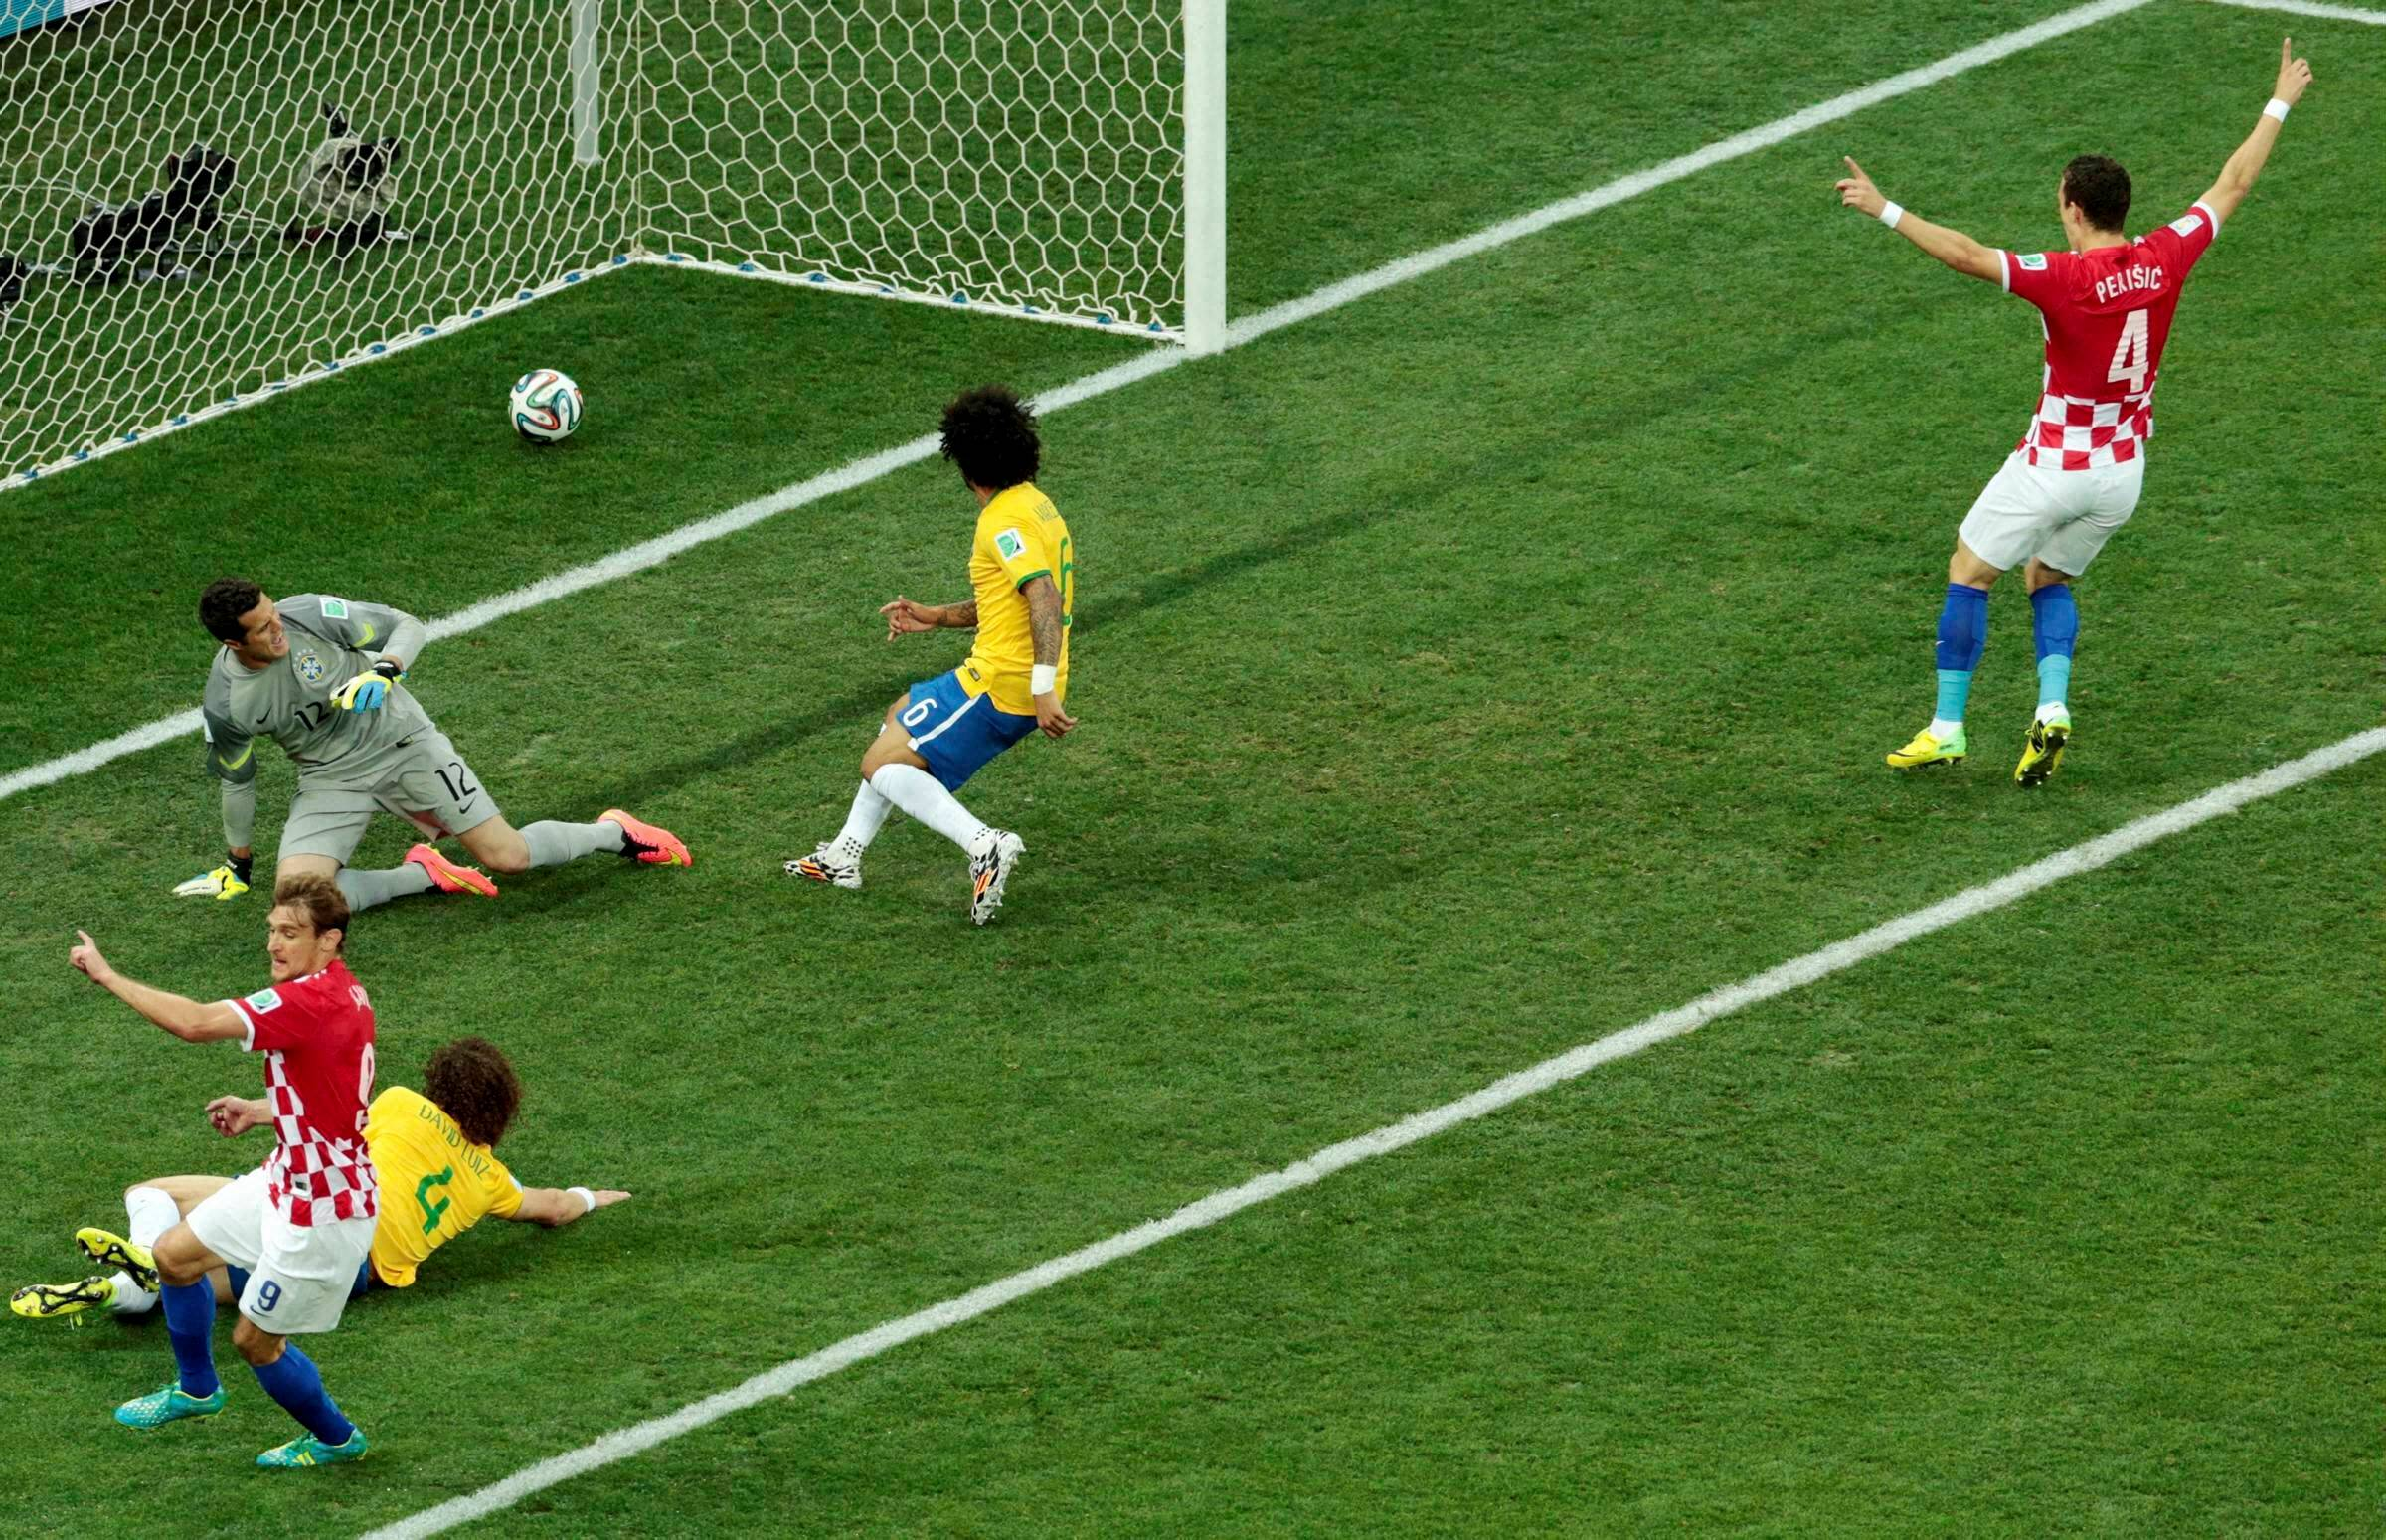 The start could not have been more disastrous for Brazil as Croatia took the lead in the 11th minute, courtesy a own goal by Brazil's Marcelo (C). Croatia's Ivan Perisic (R) celebrates after his team had a 1-0 lead in the Group A encounter. (Source: AP)